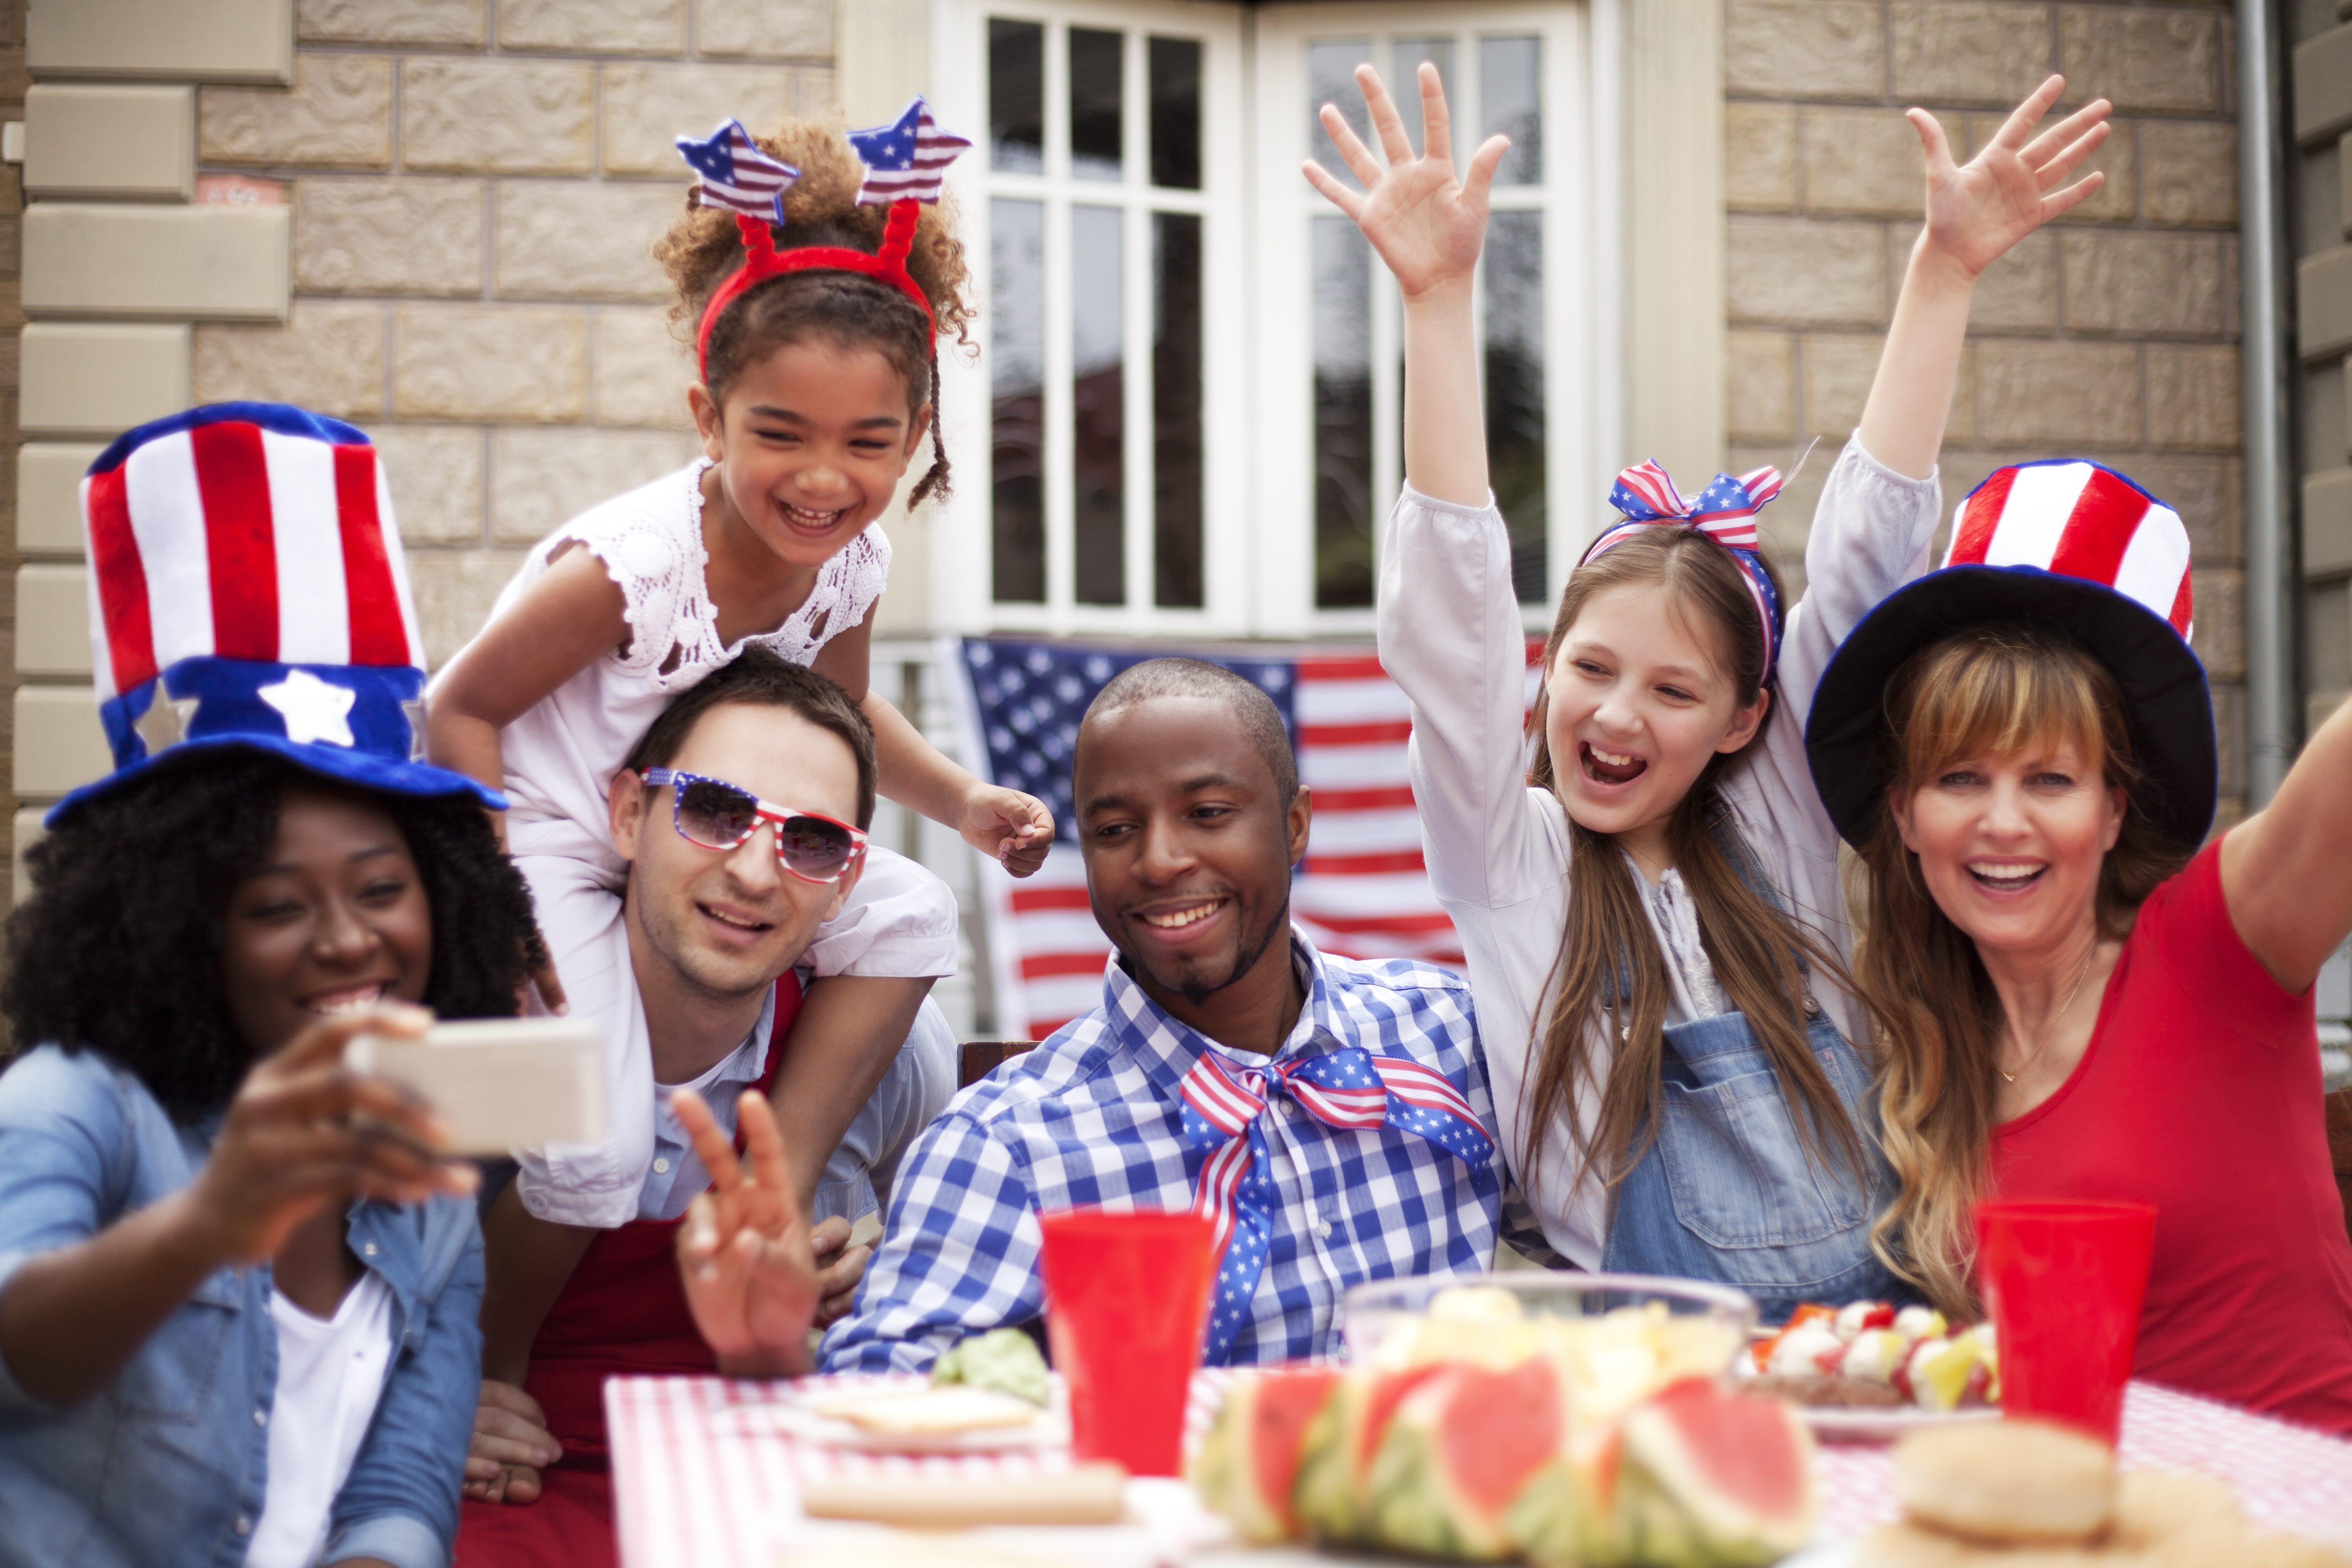 Plan Your Fourth of July 2021 Celebration in Southlake at Shops of Southlake